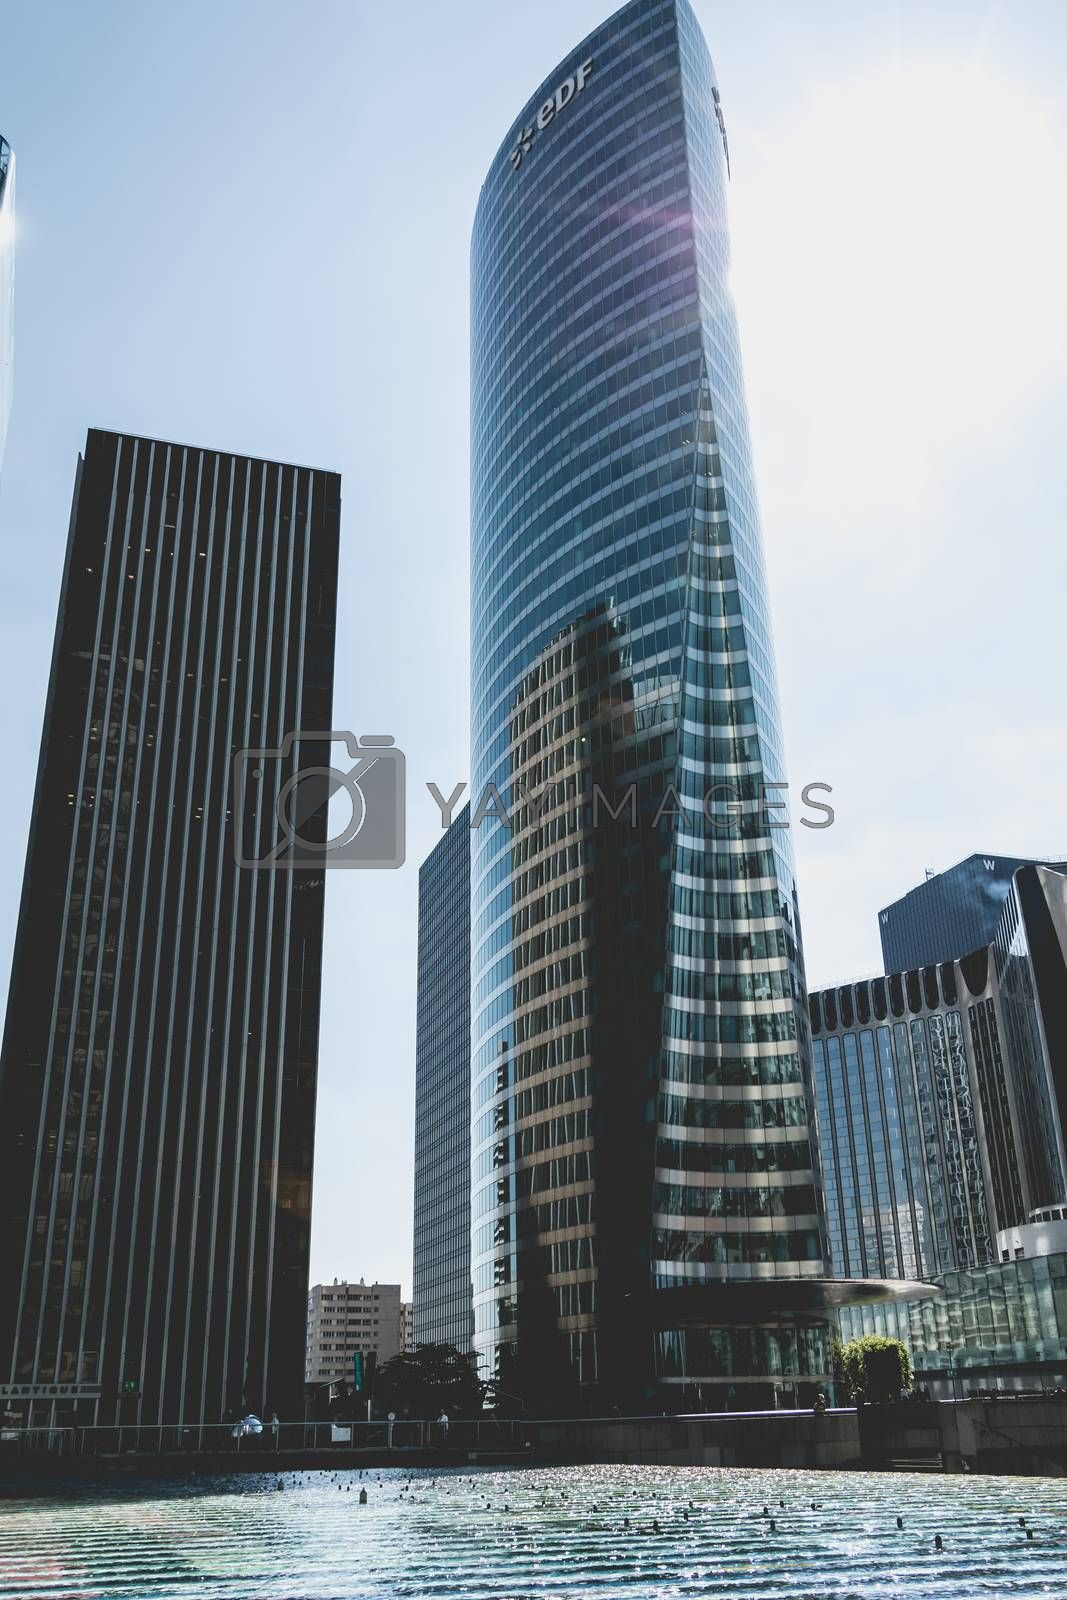 Nanterre, FRANCE, May 09, 2017 - An overview of the major buildings of the Defense business district in Paris